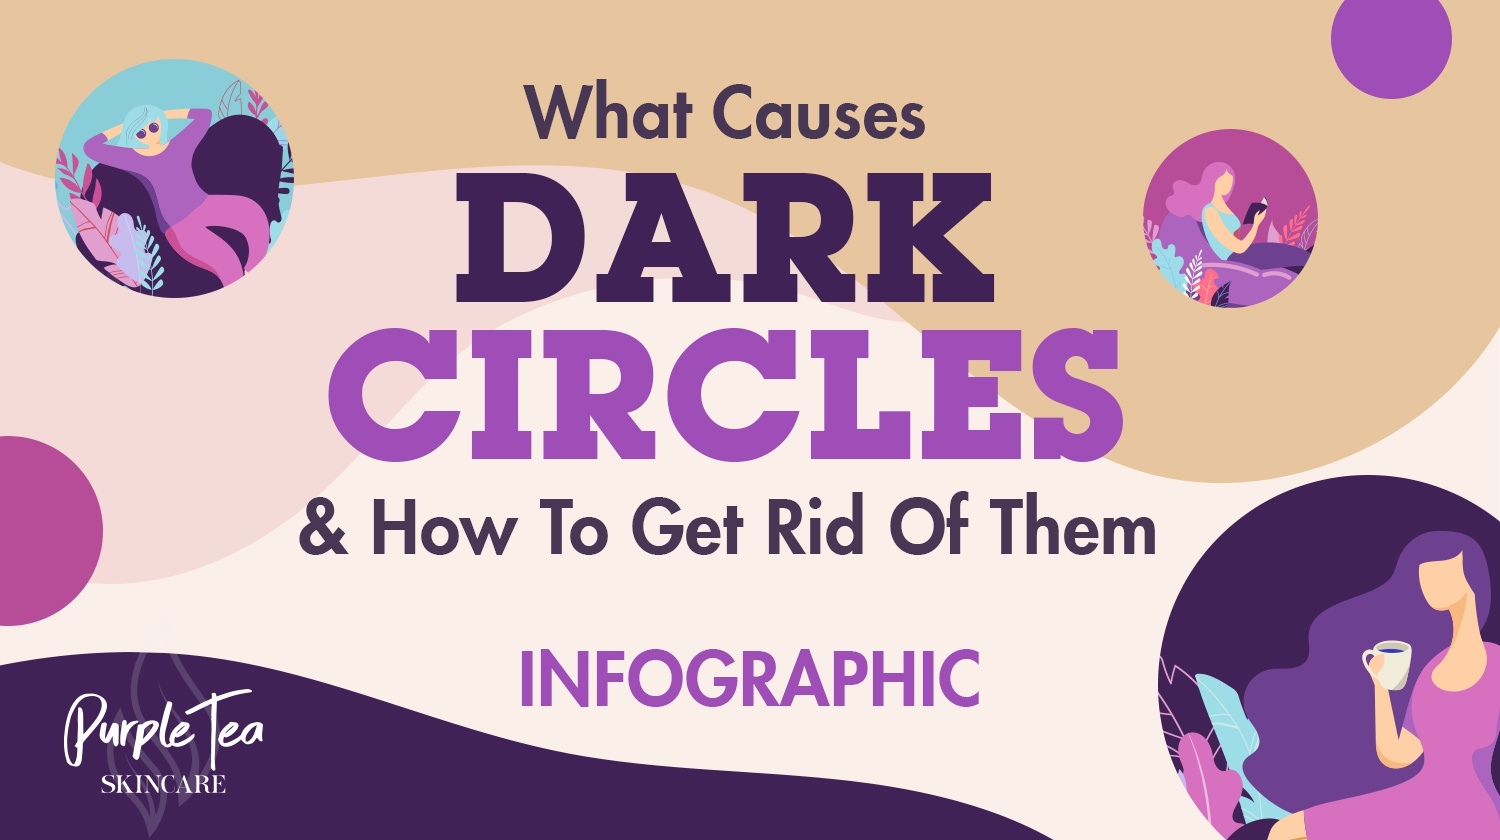 What Causes Dark Circles Under The Eye And How To Get Rid Of Them With Purple Tea #infographic